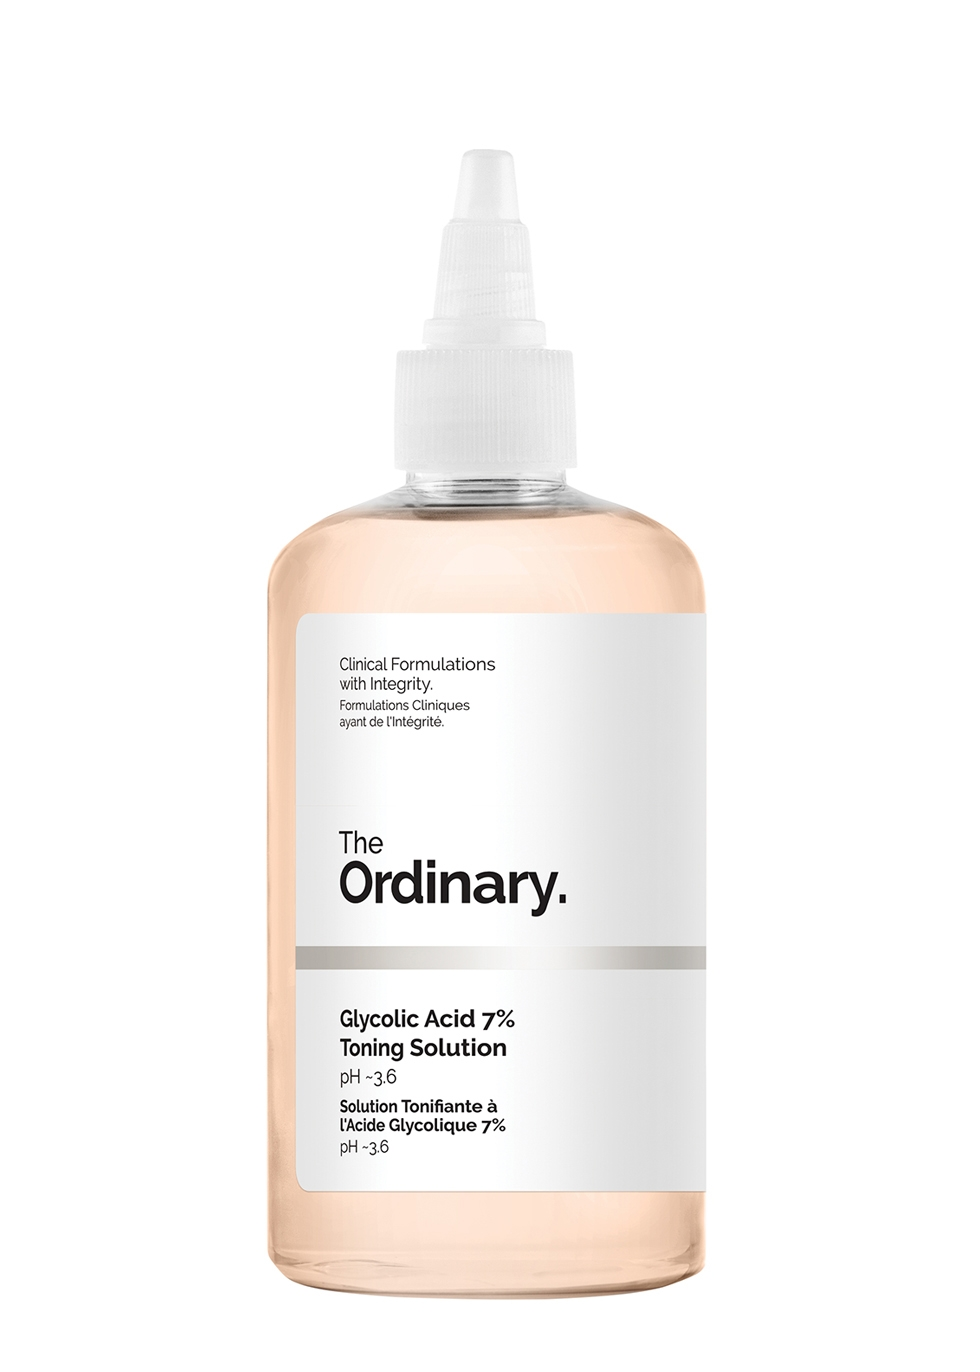 Glycolic Acid 7% Toning Solution 240ml by The Ordinary